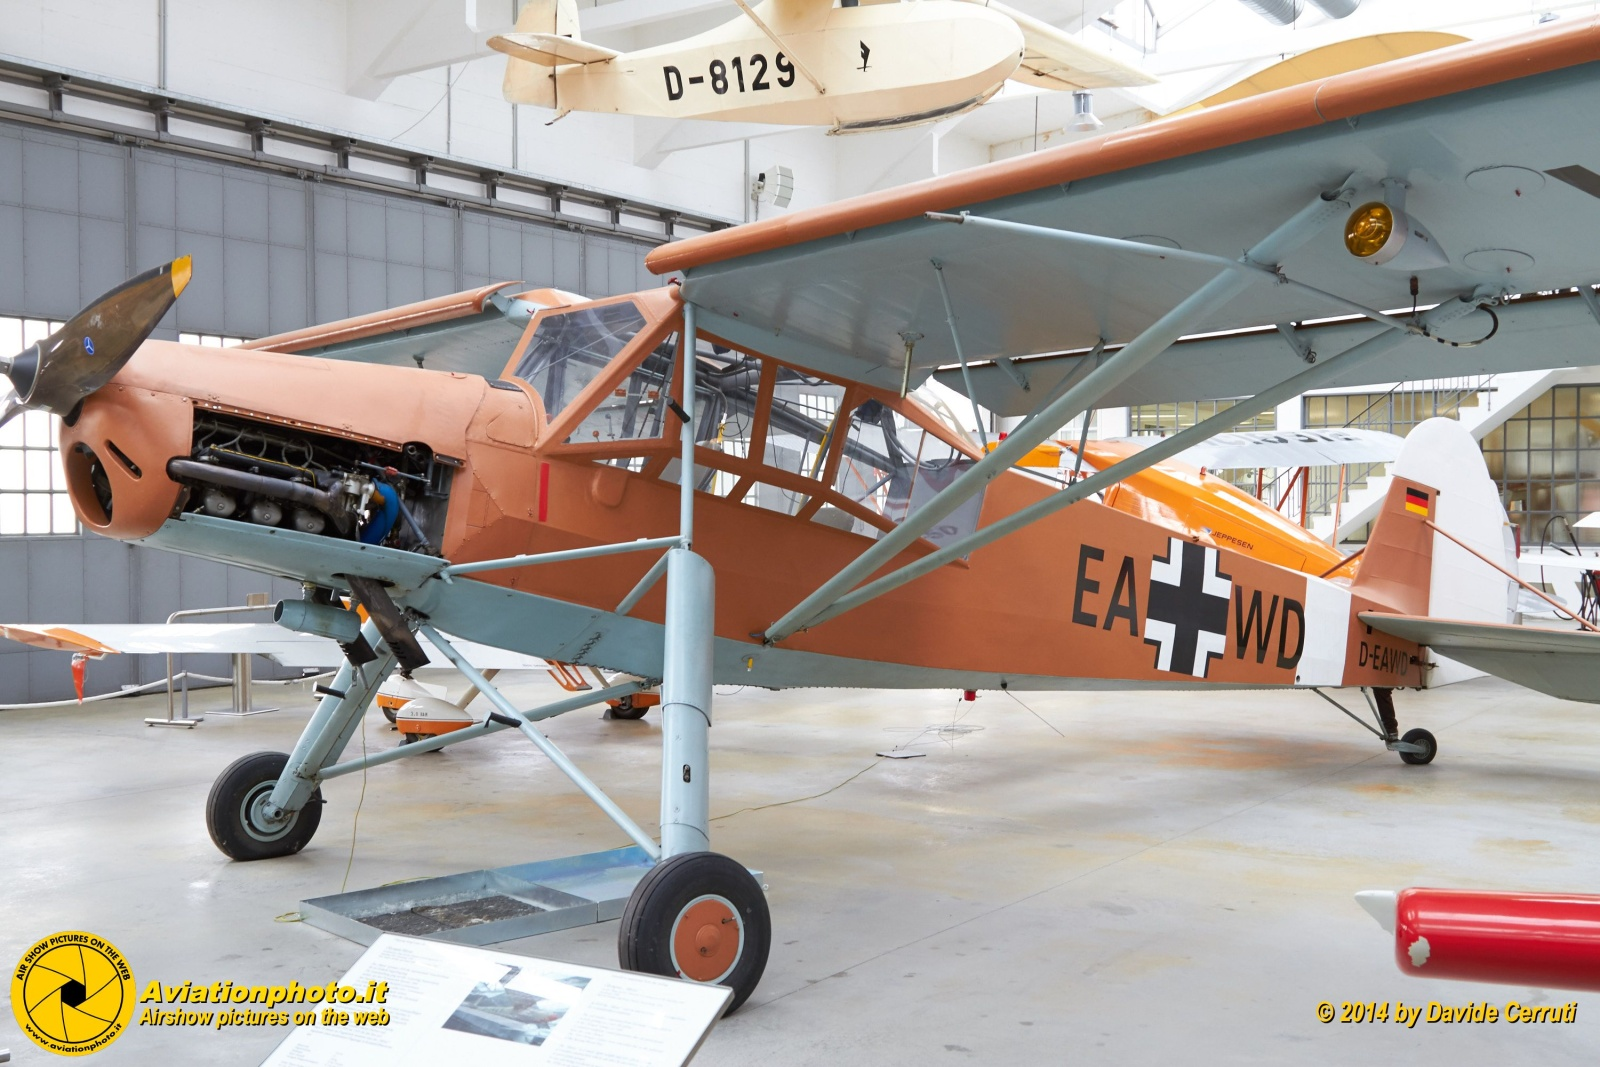 Munich Aviation Museum (Flugwerft Schleissheim)